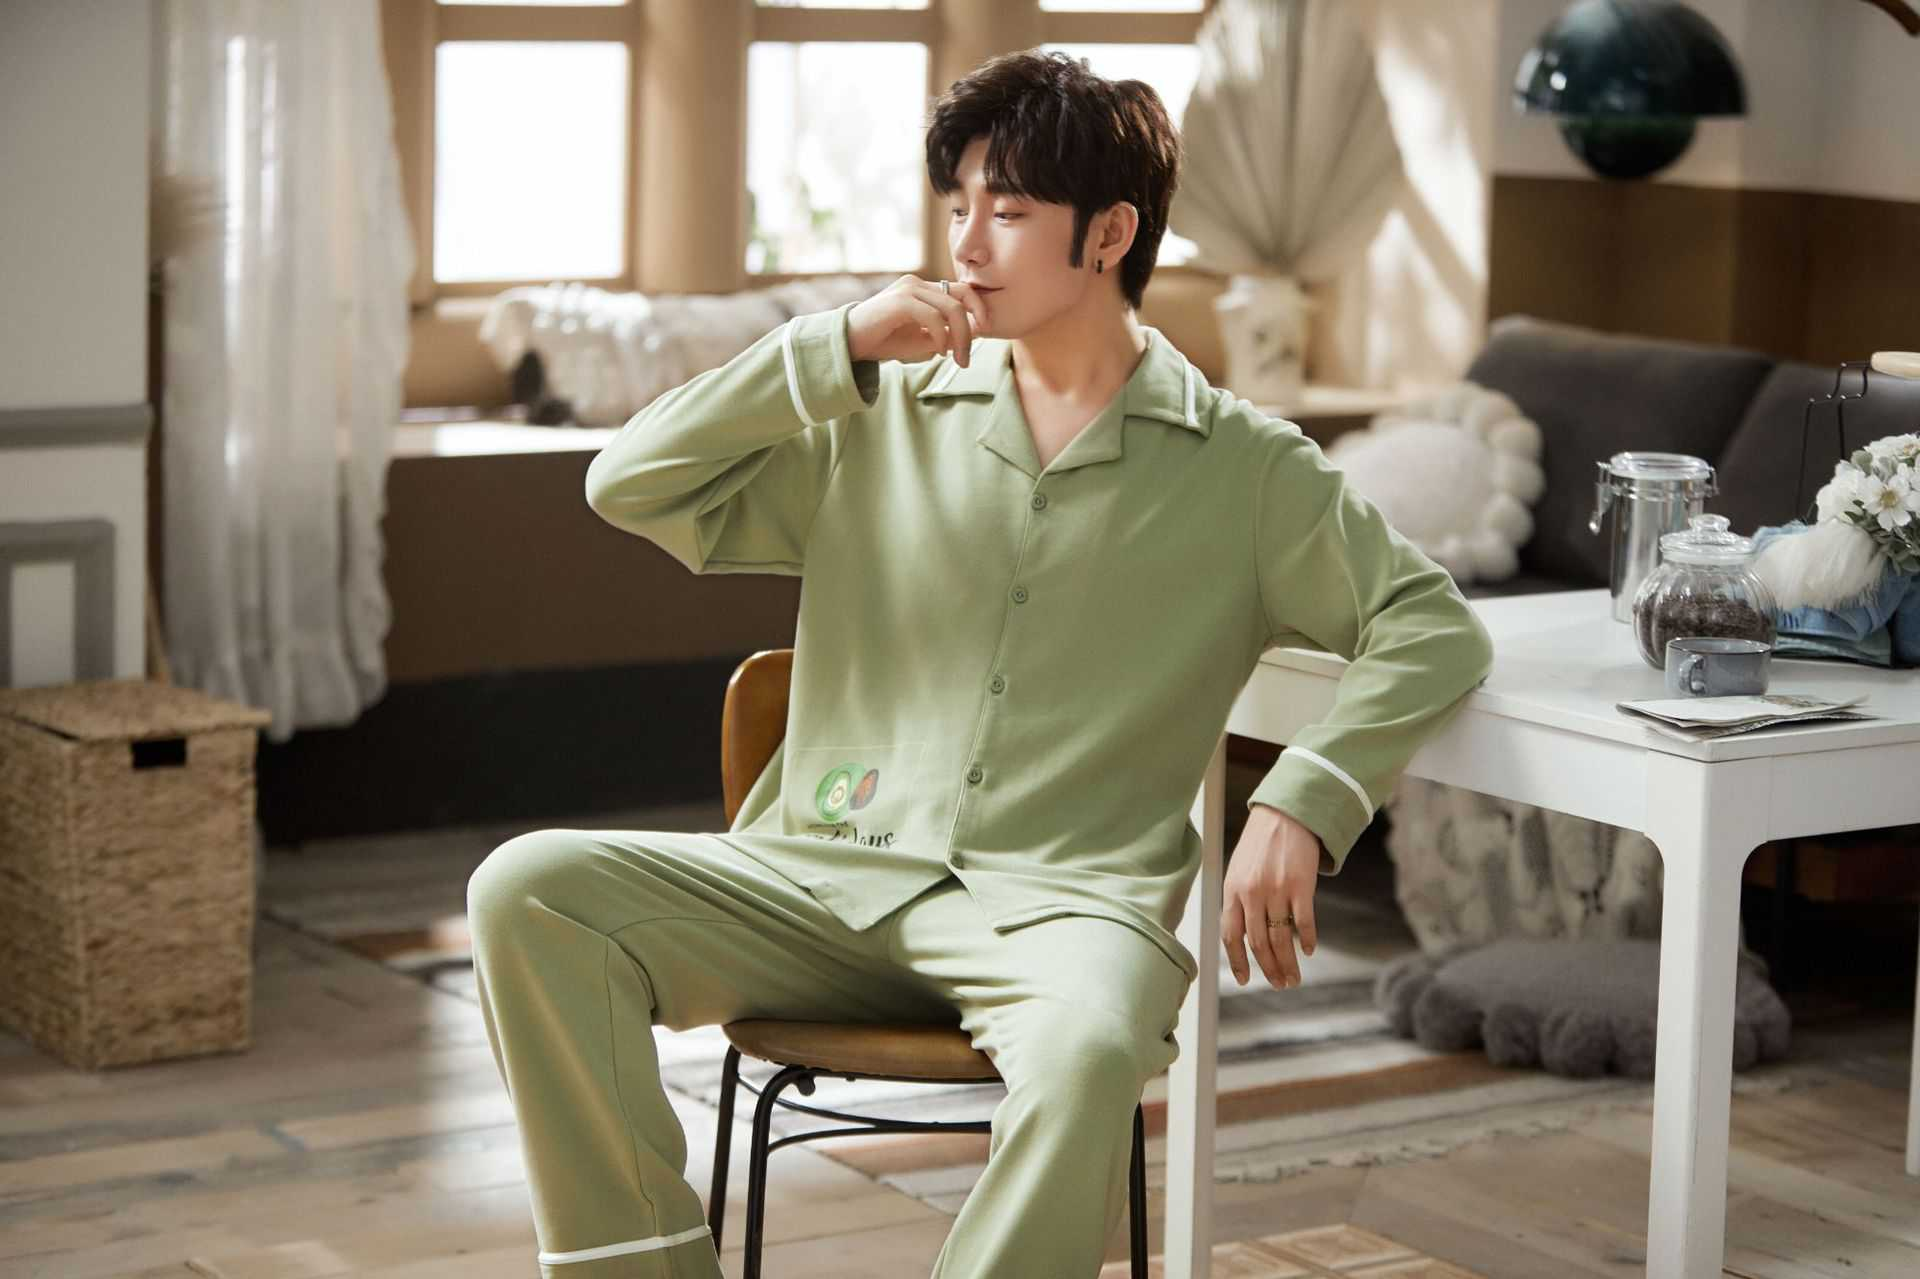 new style Korean cardigan models cotton long-sleeved casual men's and women's Pajamas on sale 6